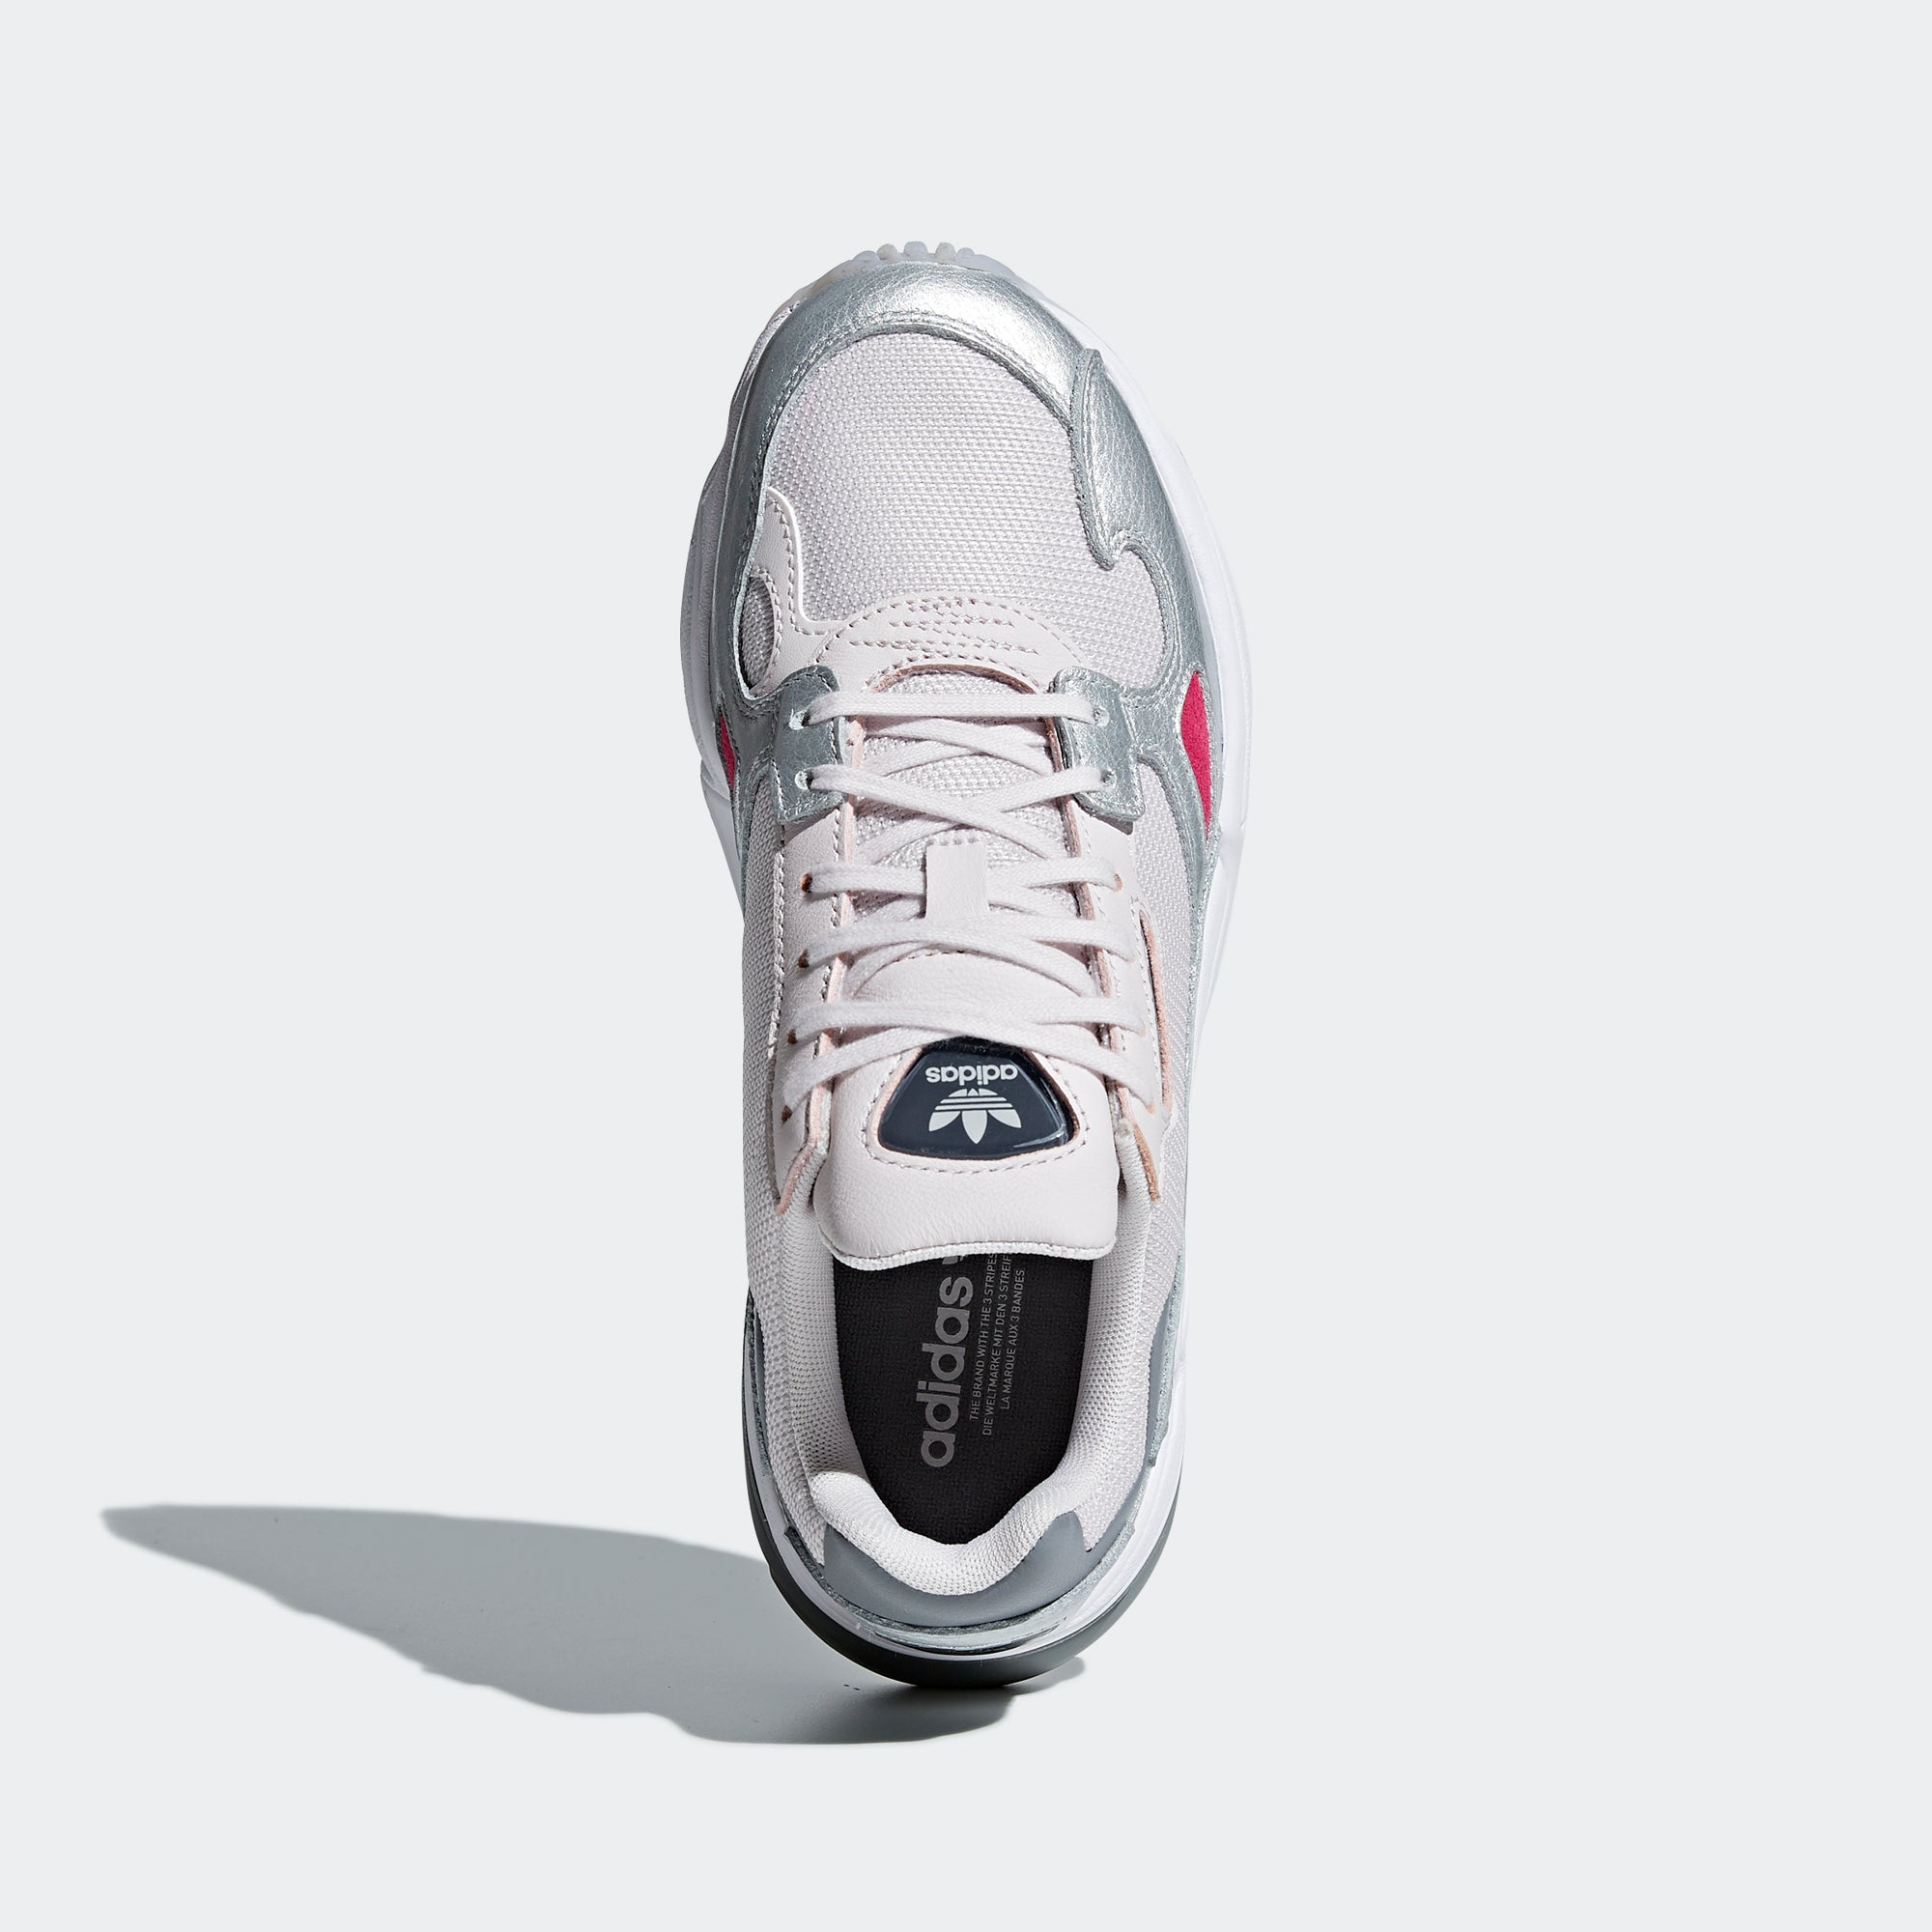 on sale 32a70 d5555 adidas Falcon Shoes Orchid Tint D96757  Chicago City Sports